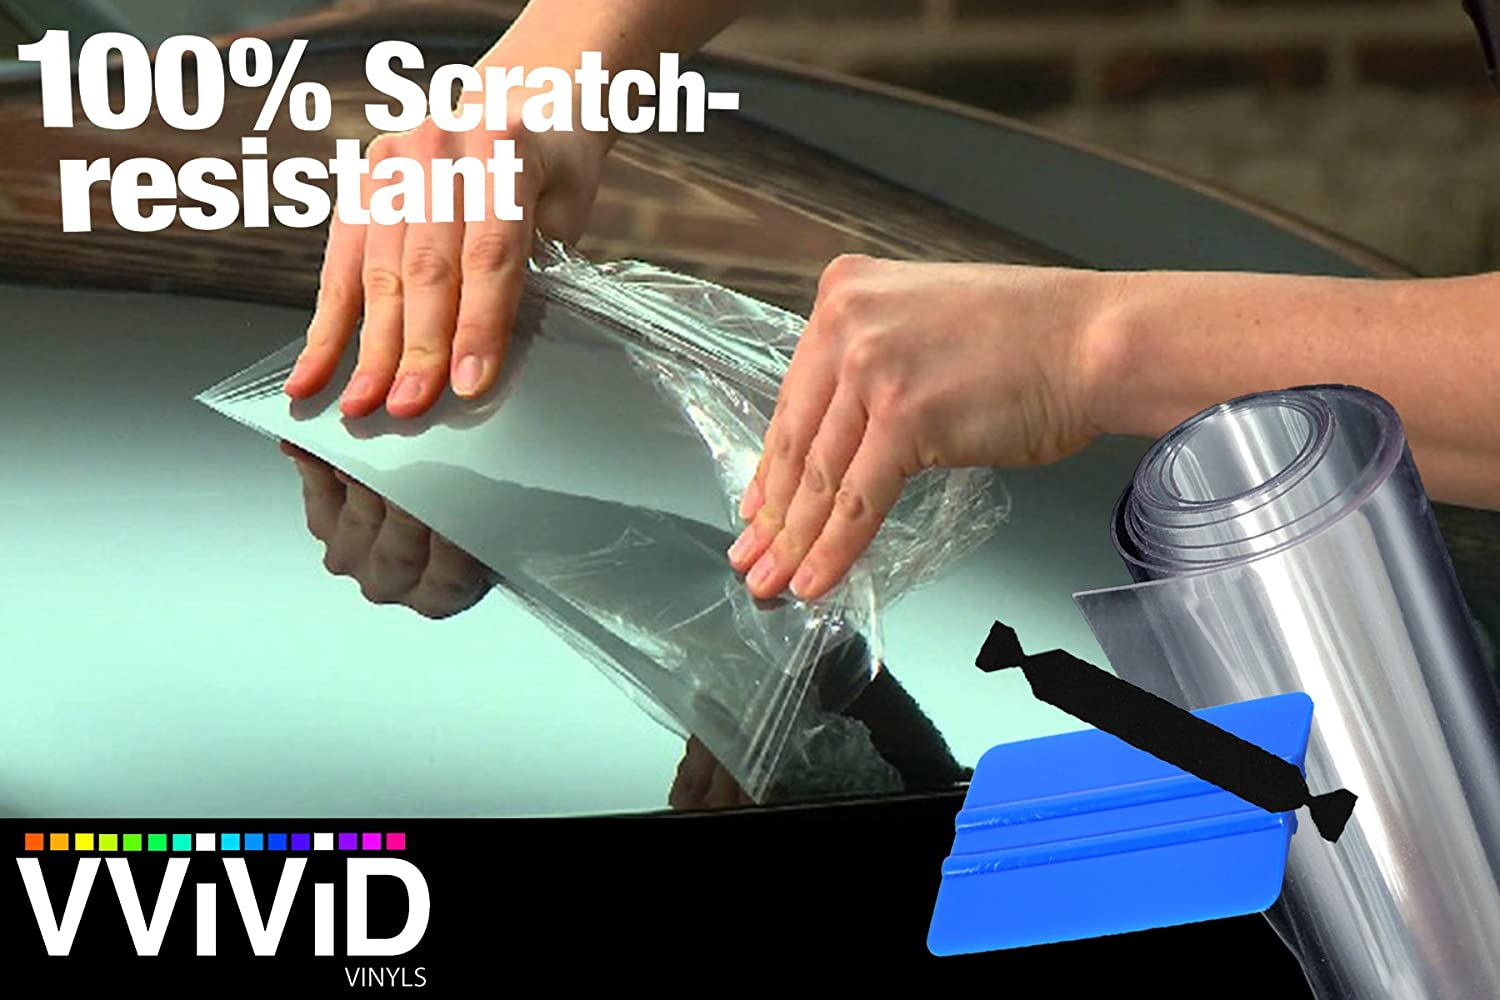 VViViD Clear Paint Protection Bulk Vinyl Wrap Film Including 3M Squeegee and Black Felt Applicator (54' x 120')